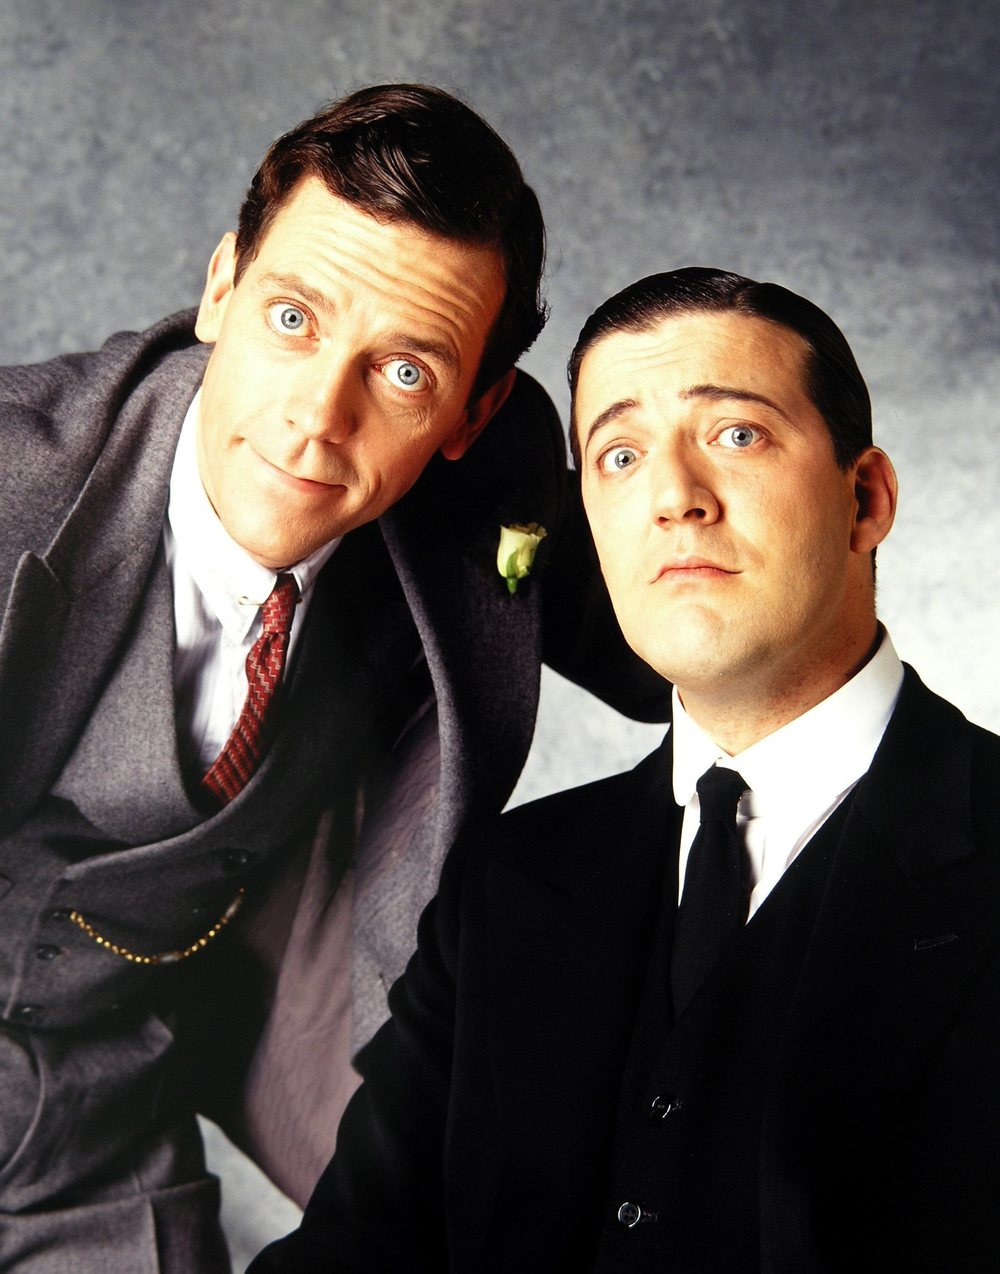 004-series-stephen-john-fry-hugh-laurie-jeeves-and-wooster-www.huy.com.ua.jpg